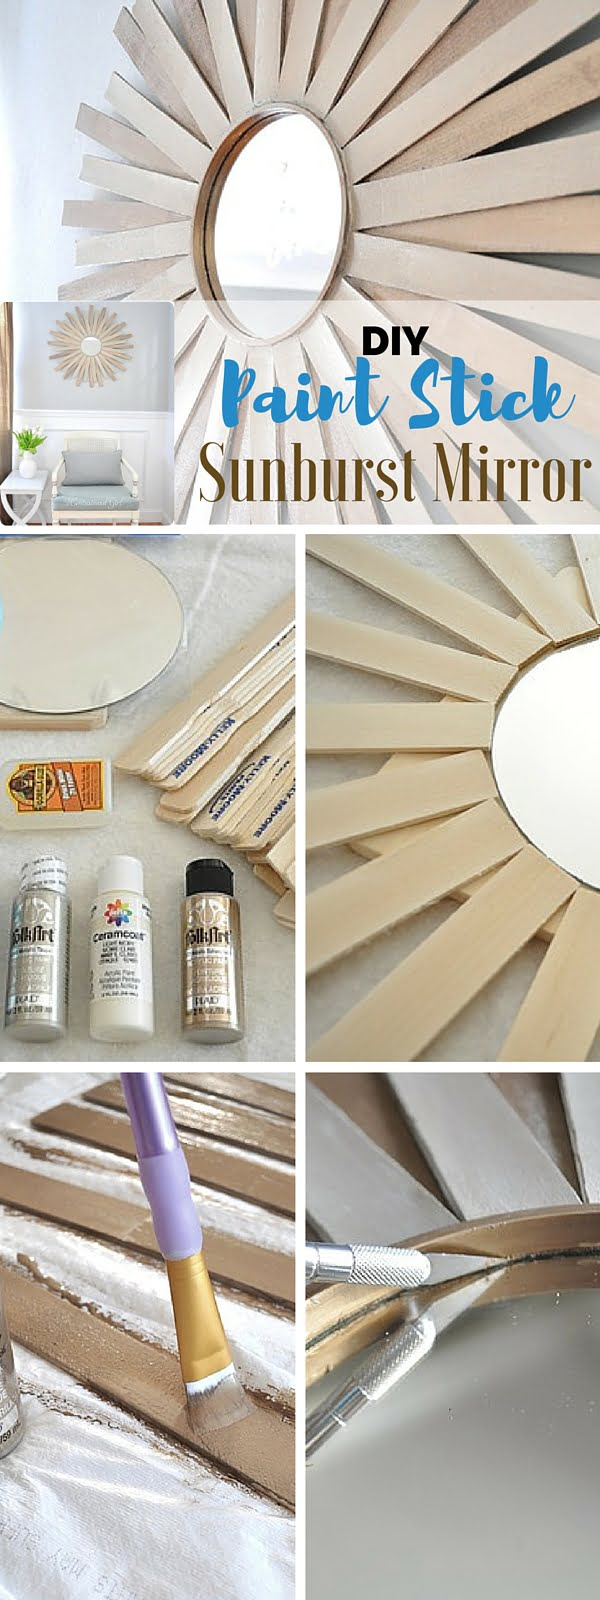 Check out the tutorial:  Paint Stick Sunburst Mirror